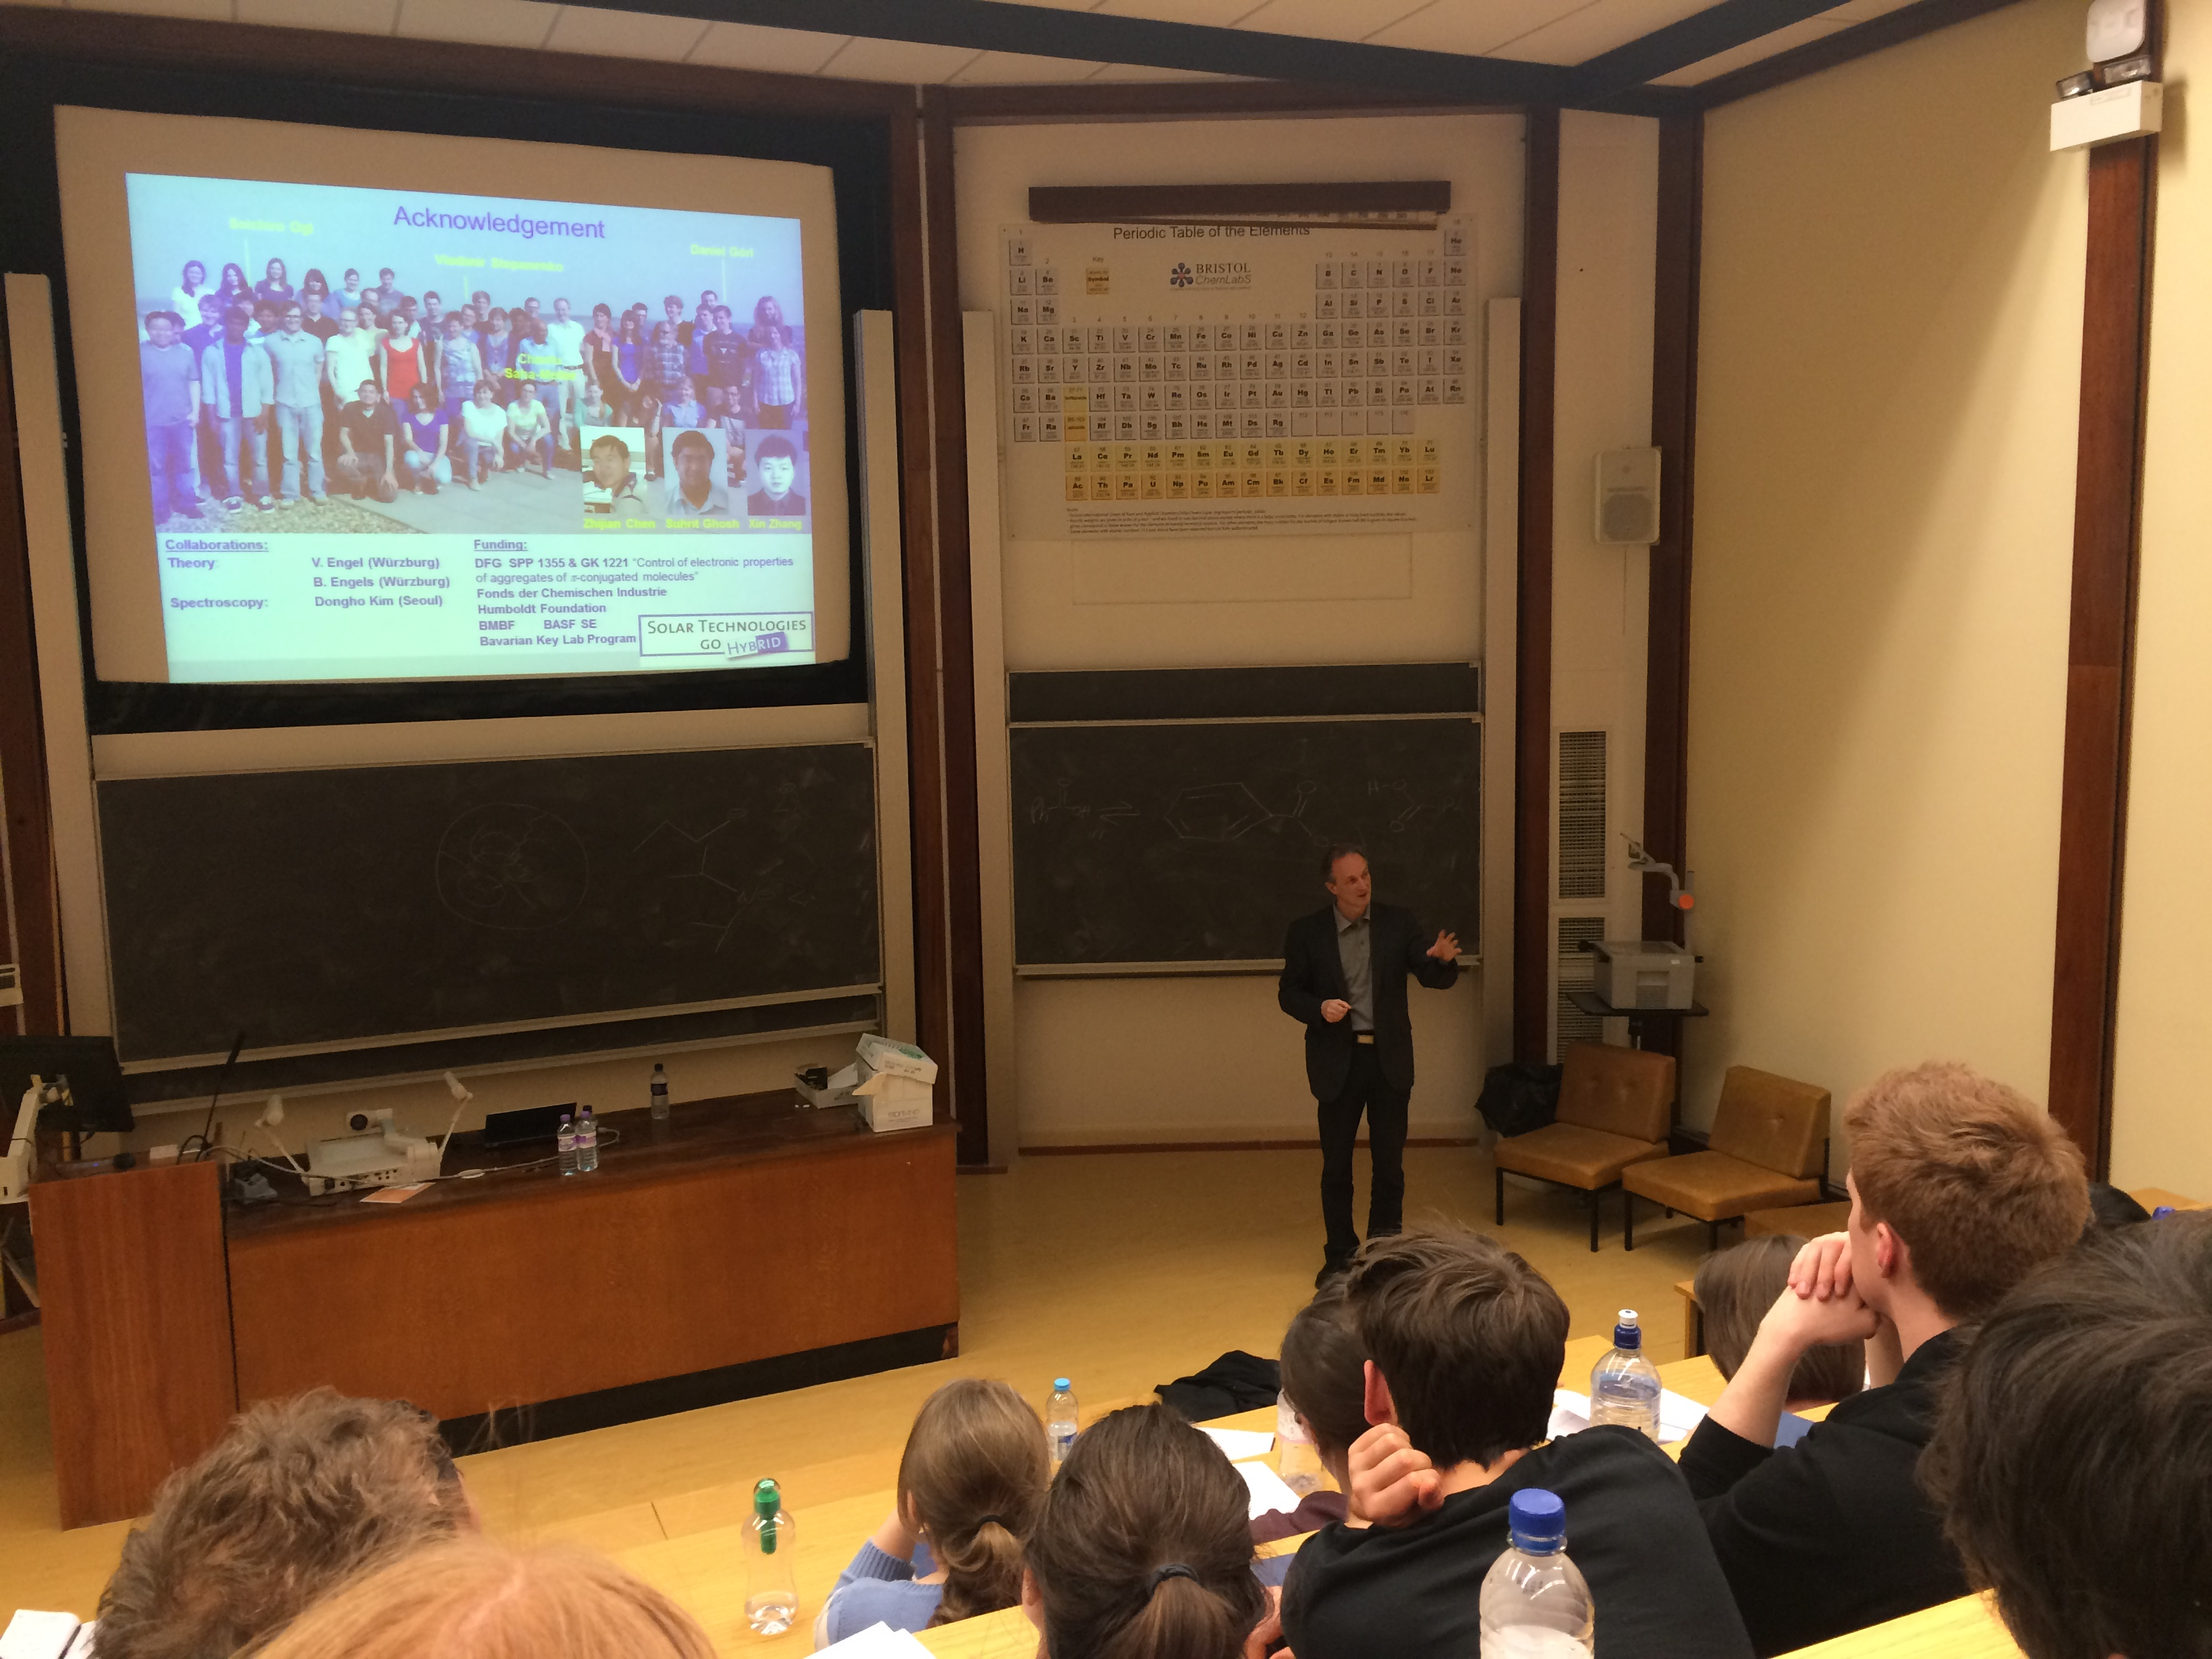 2015 faul research group his lecture was preceded by a series of excellent talks by bristol postgraduate researchers on topics from nanoparticle assembly at interfaces to the